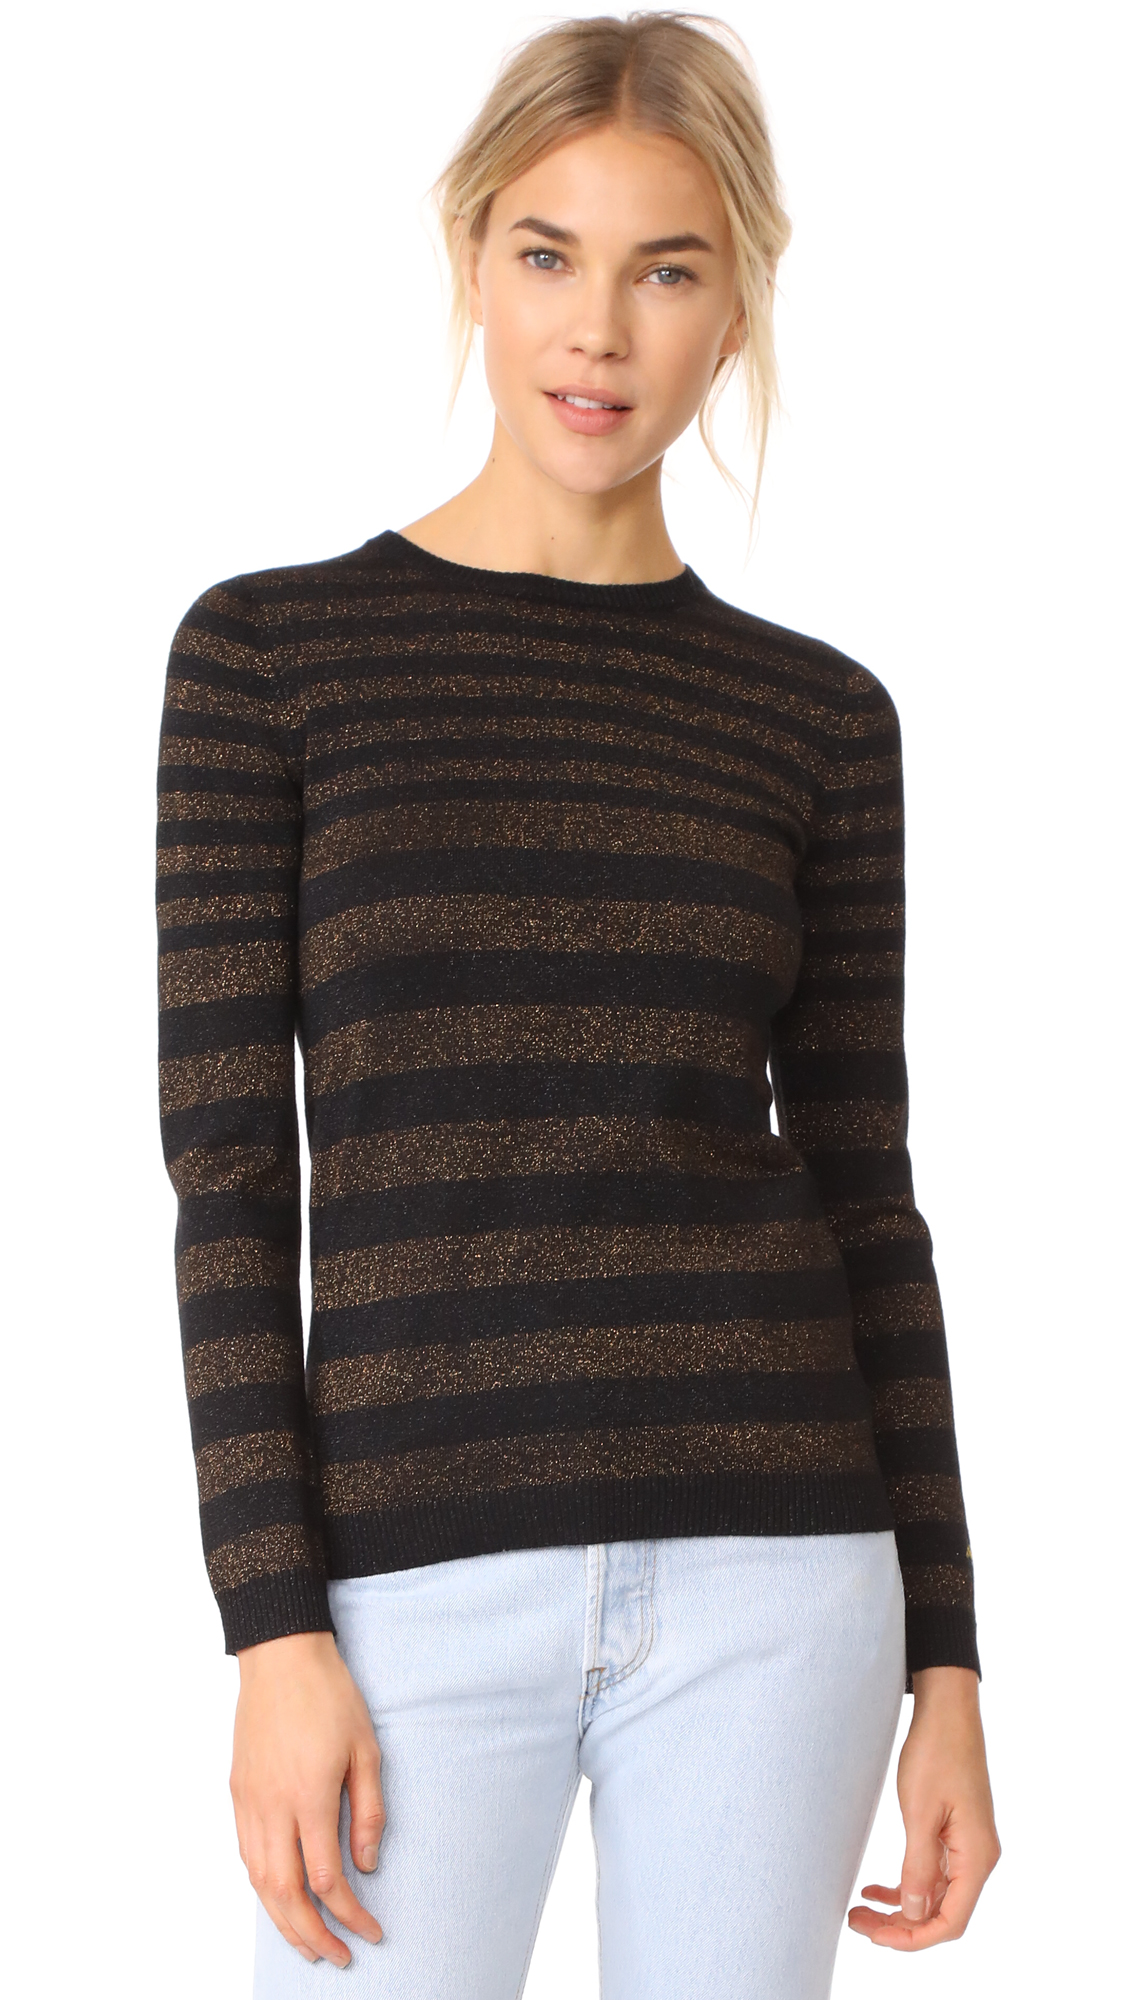 Bella Freud Deep Disco Stripe Jumper - Black/Bronze